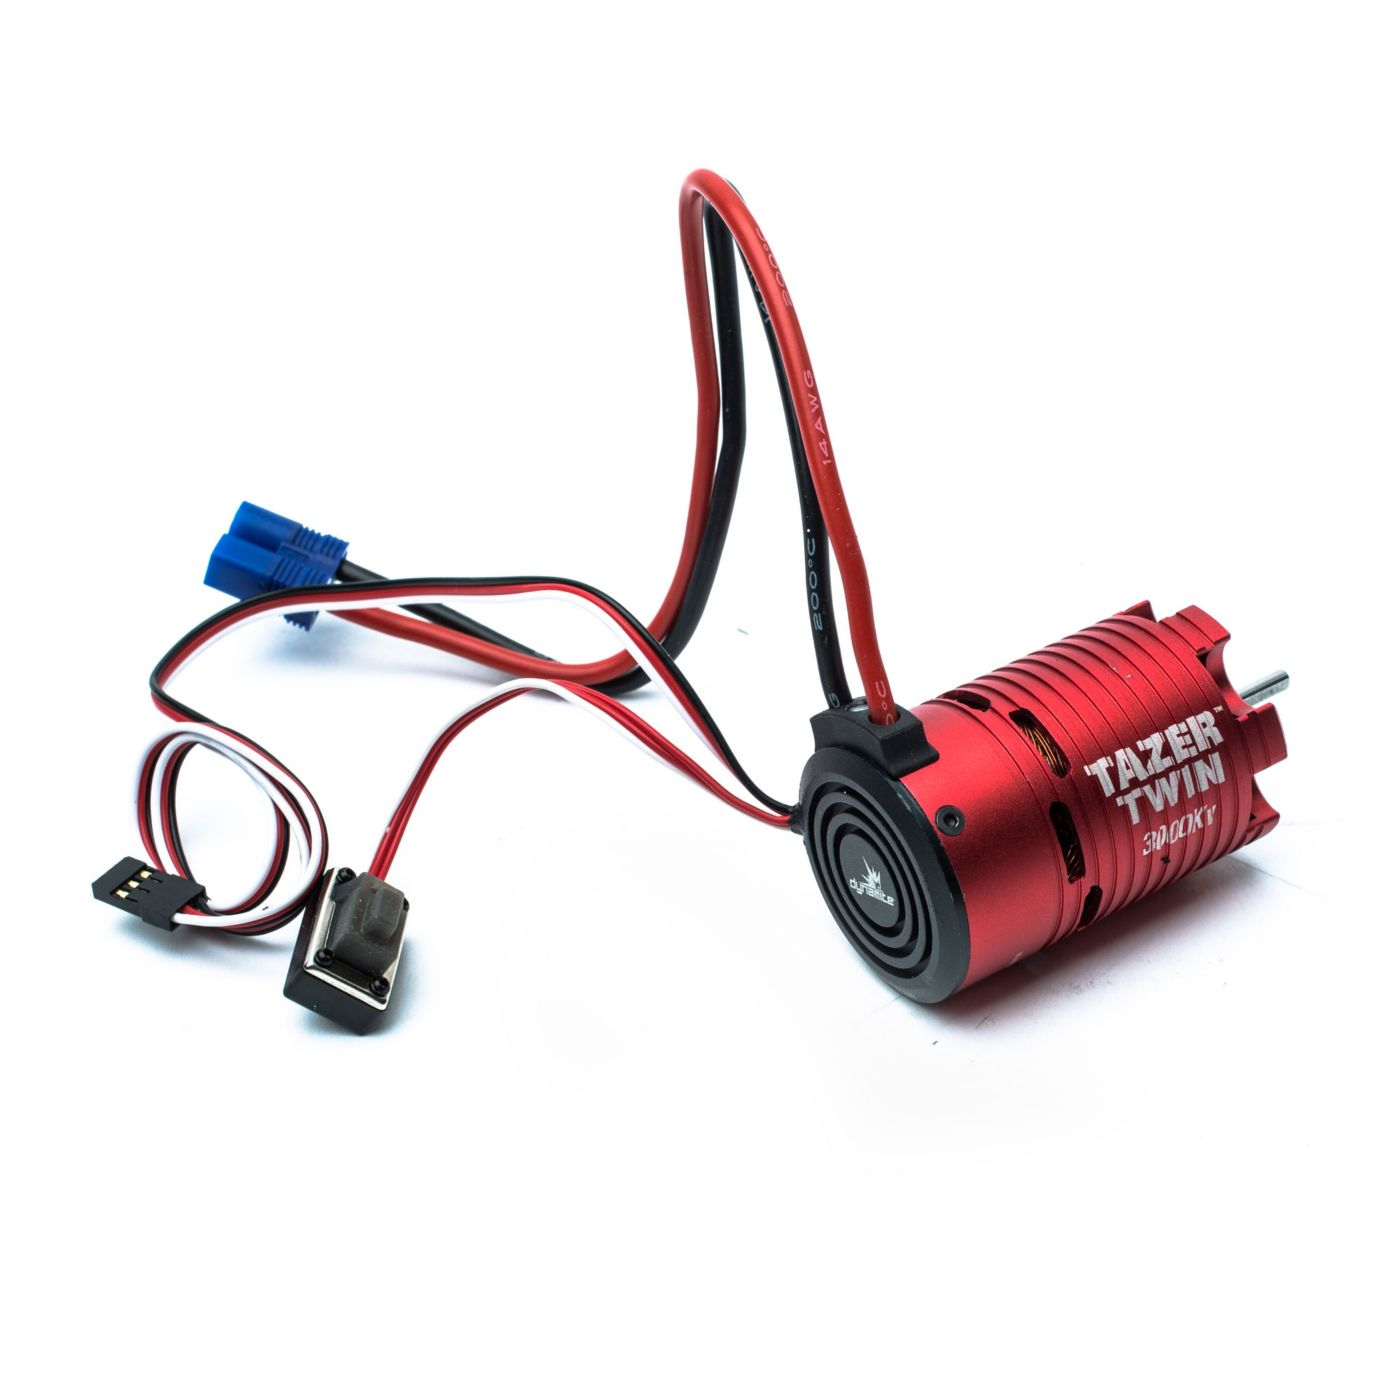 medium resolution of image for tazer twin 2 in 1 brushless motor esc combo 3000kv